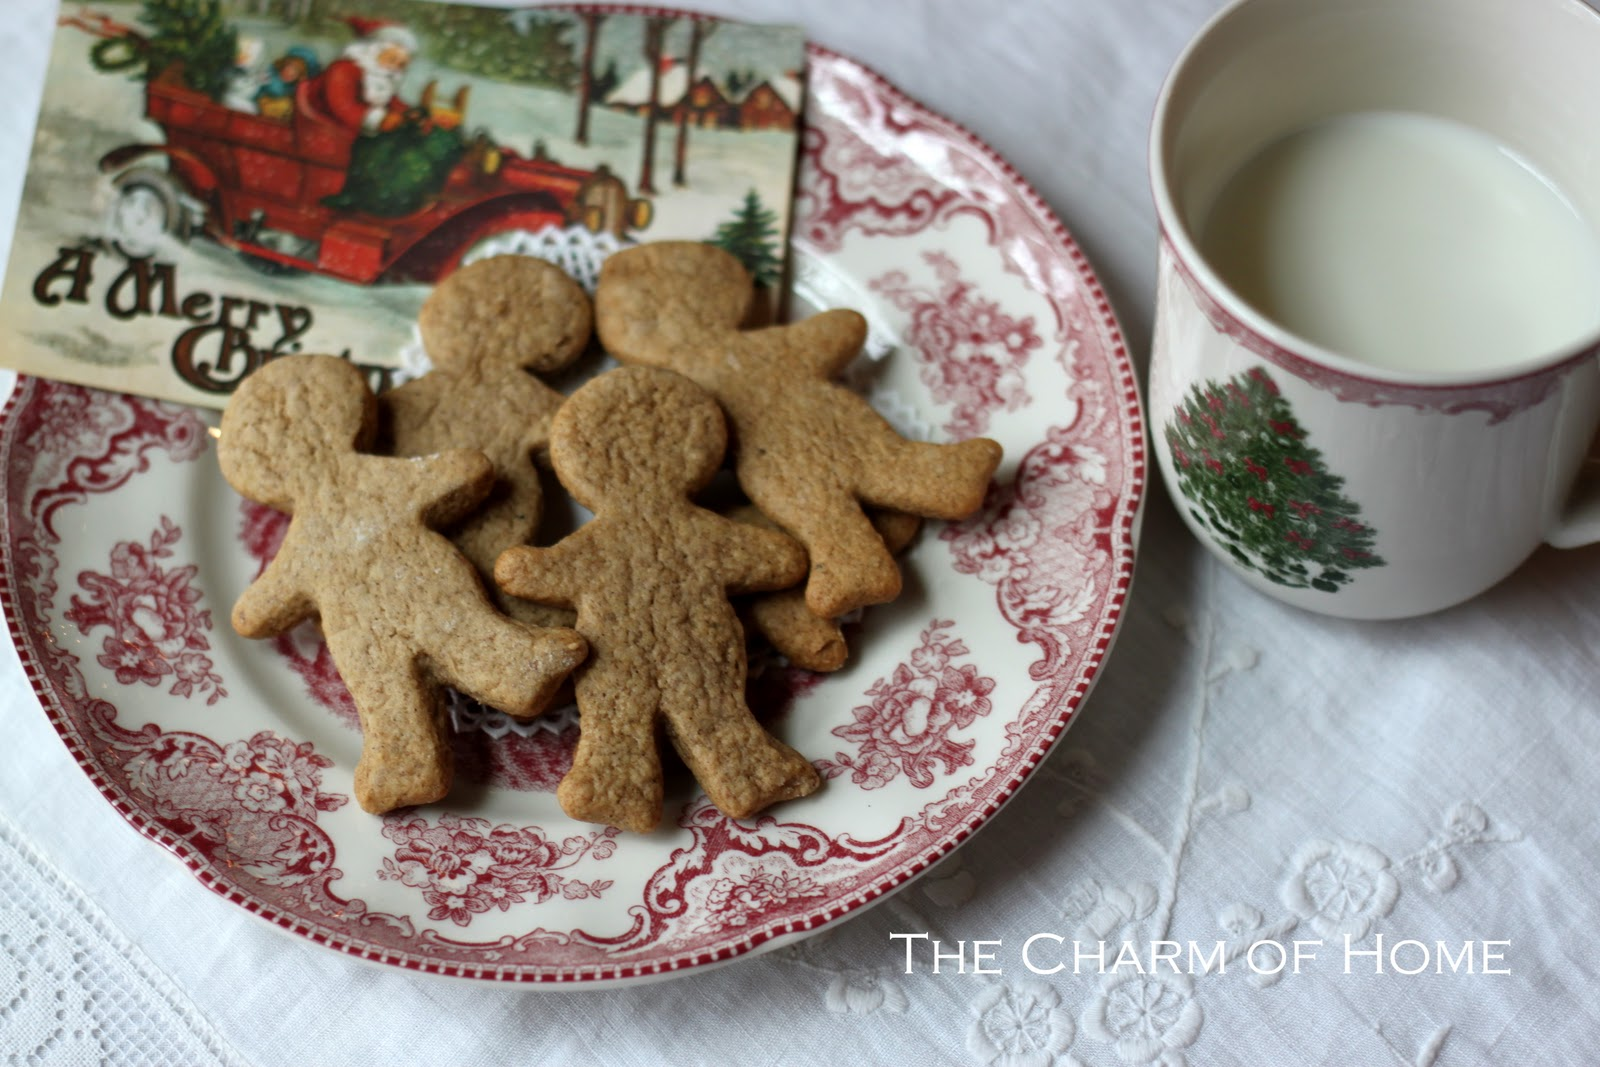 The Charm of Home: Spicy Gingerbread Cookies